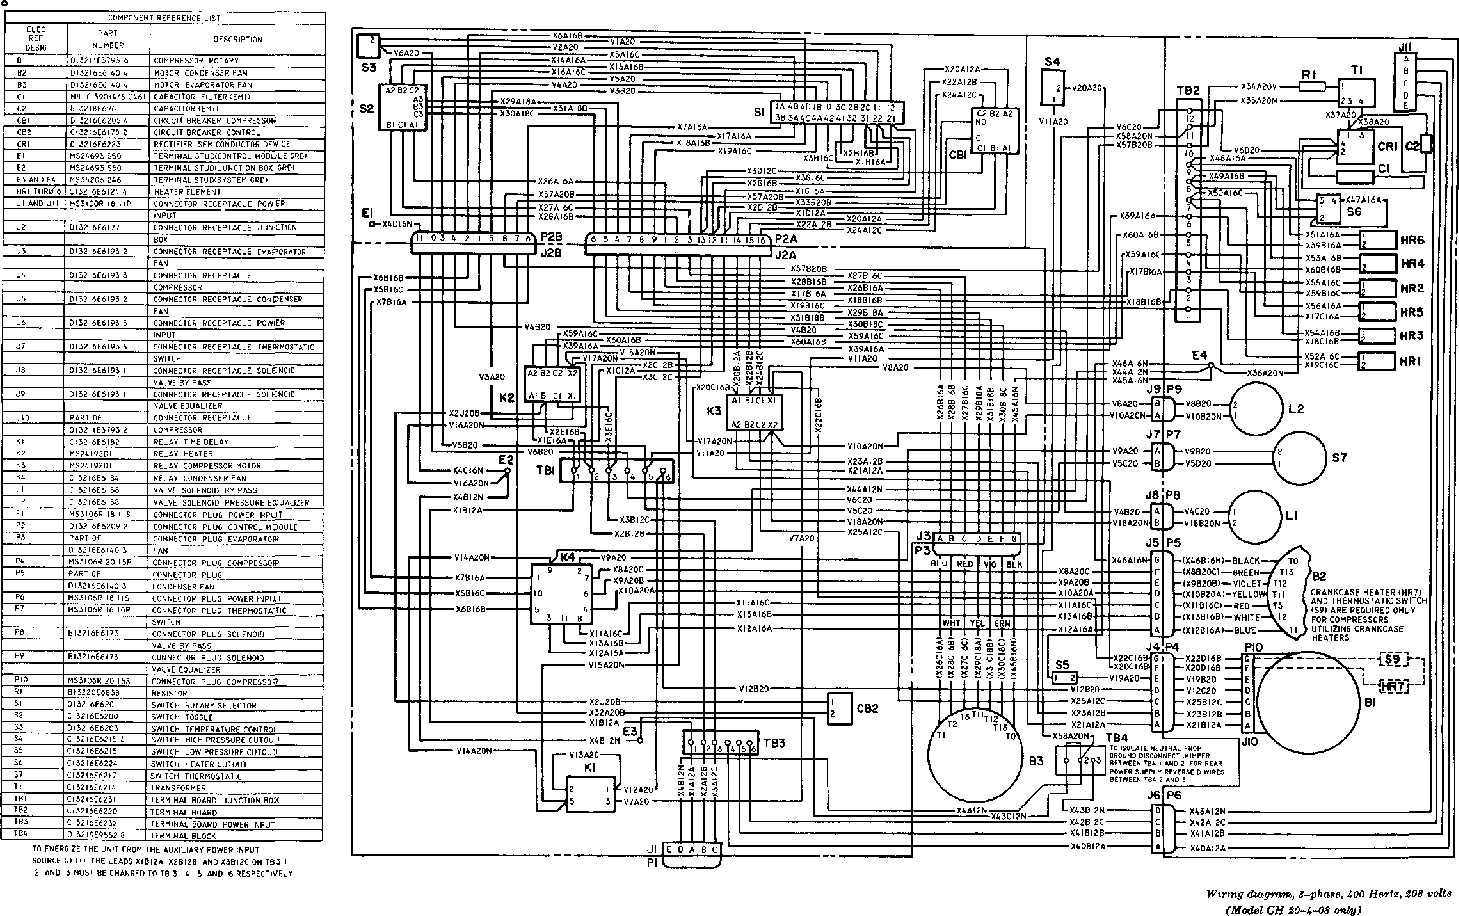 3 phase panel wiring diagram schematics and wiring diagrams 3 phase to single wiring diagram wellnessarticles